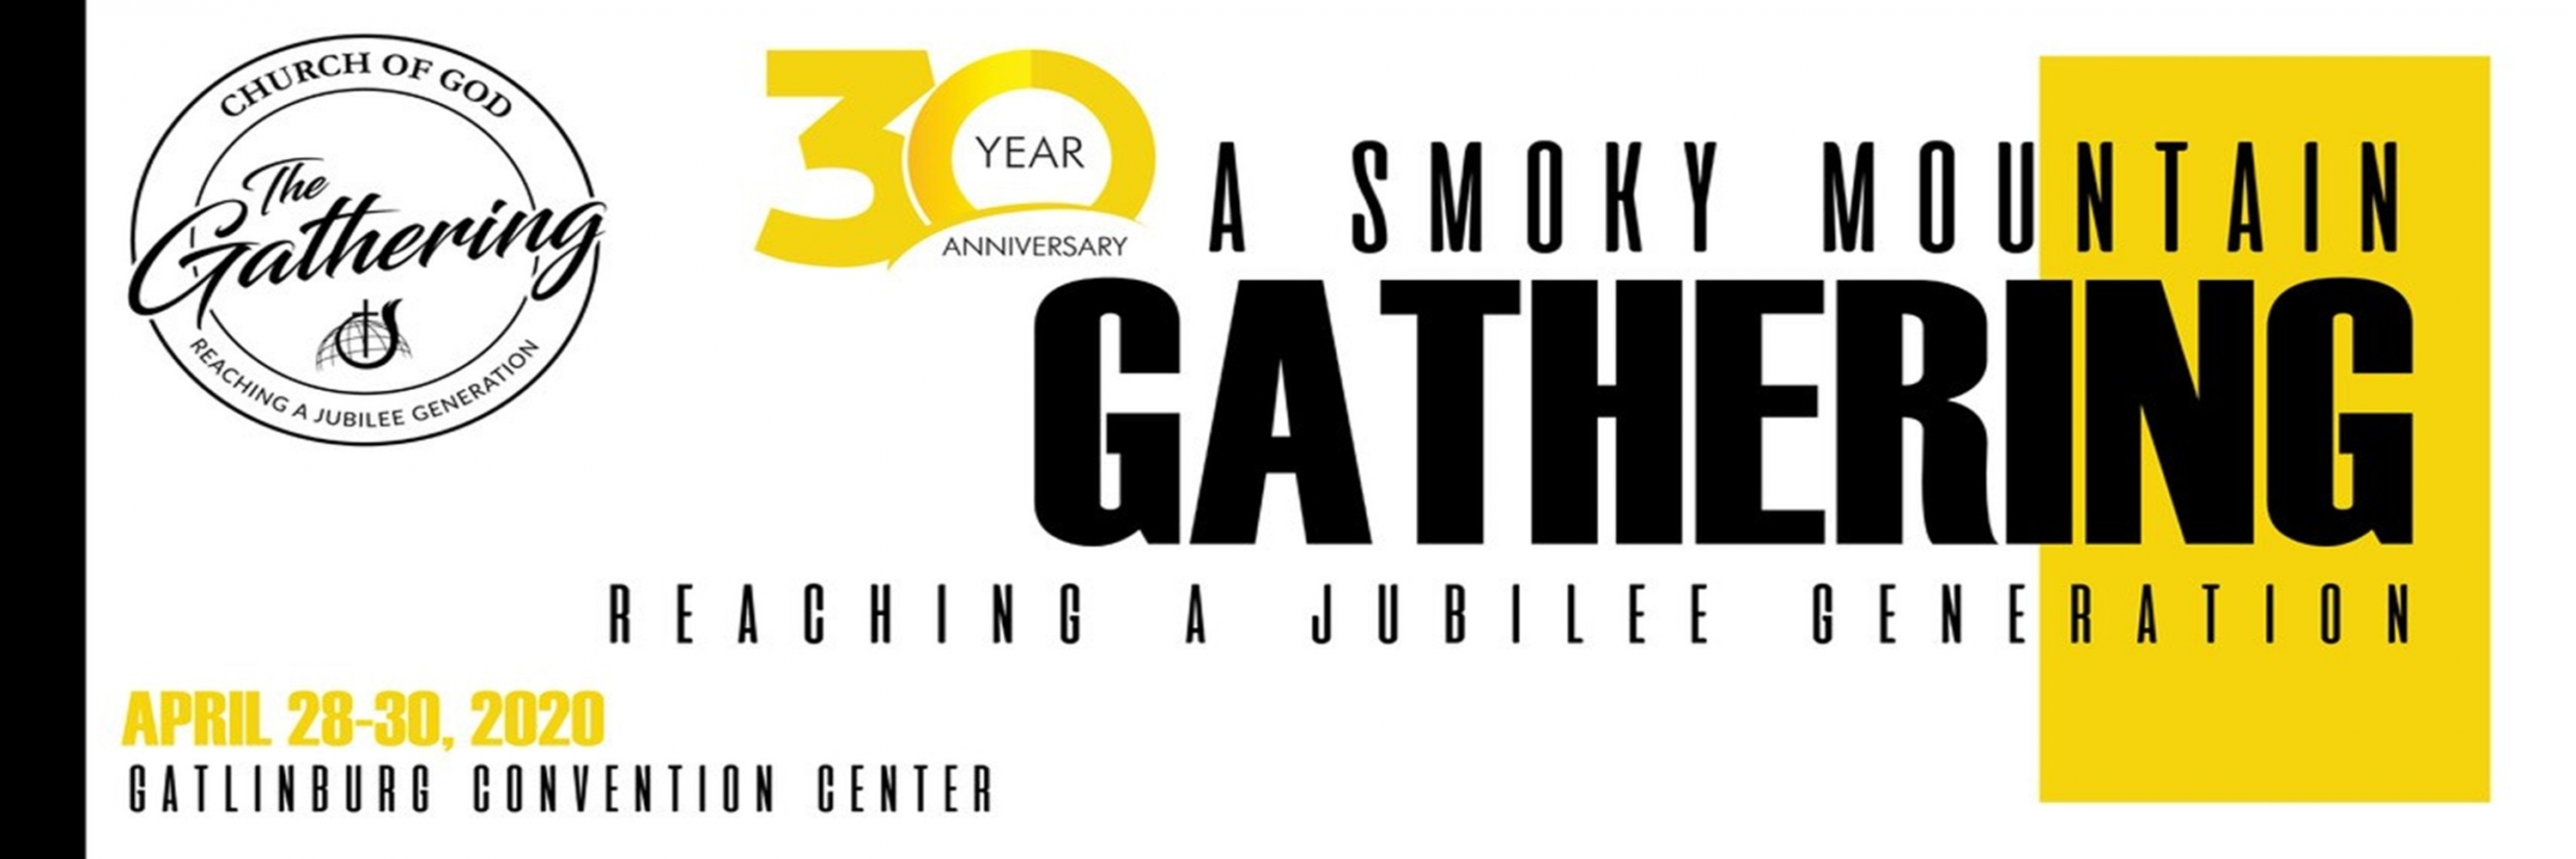 Smoky-Mountain-Gathering-Slide5